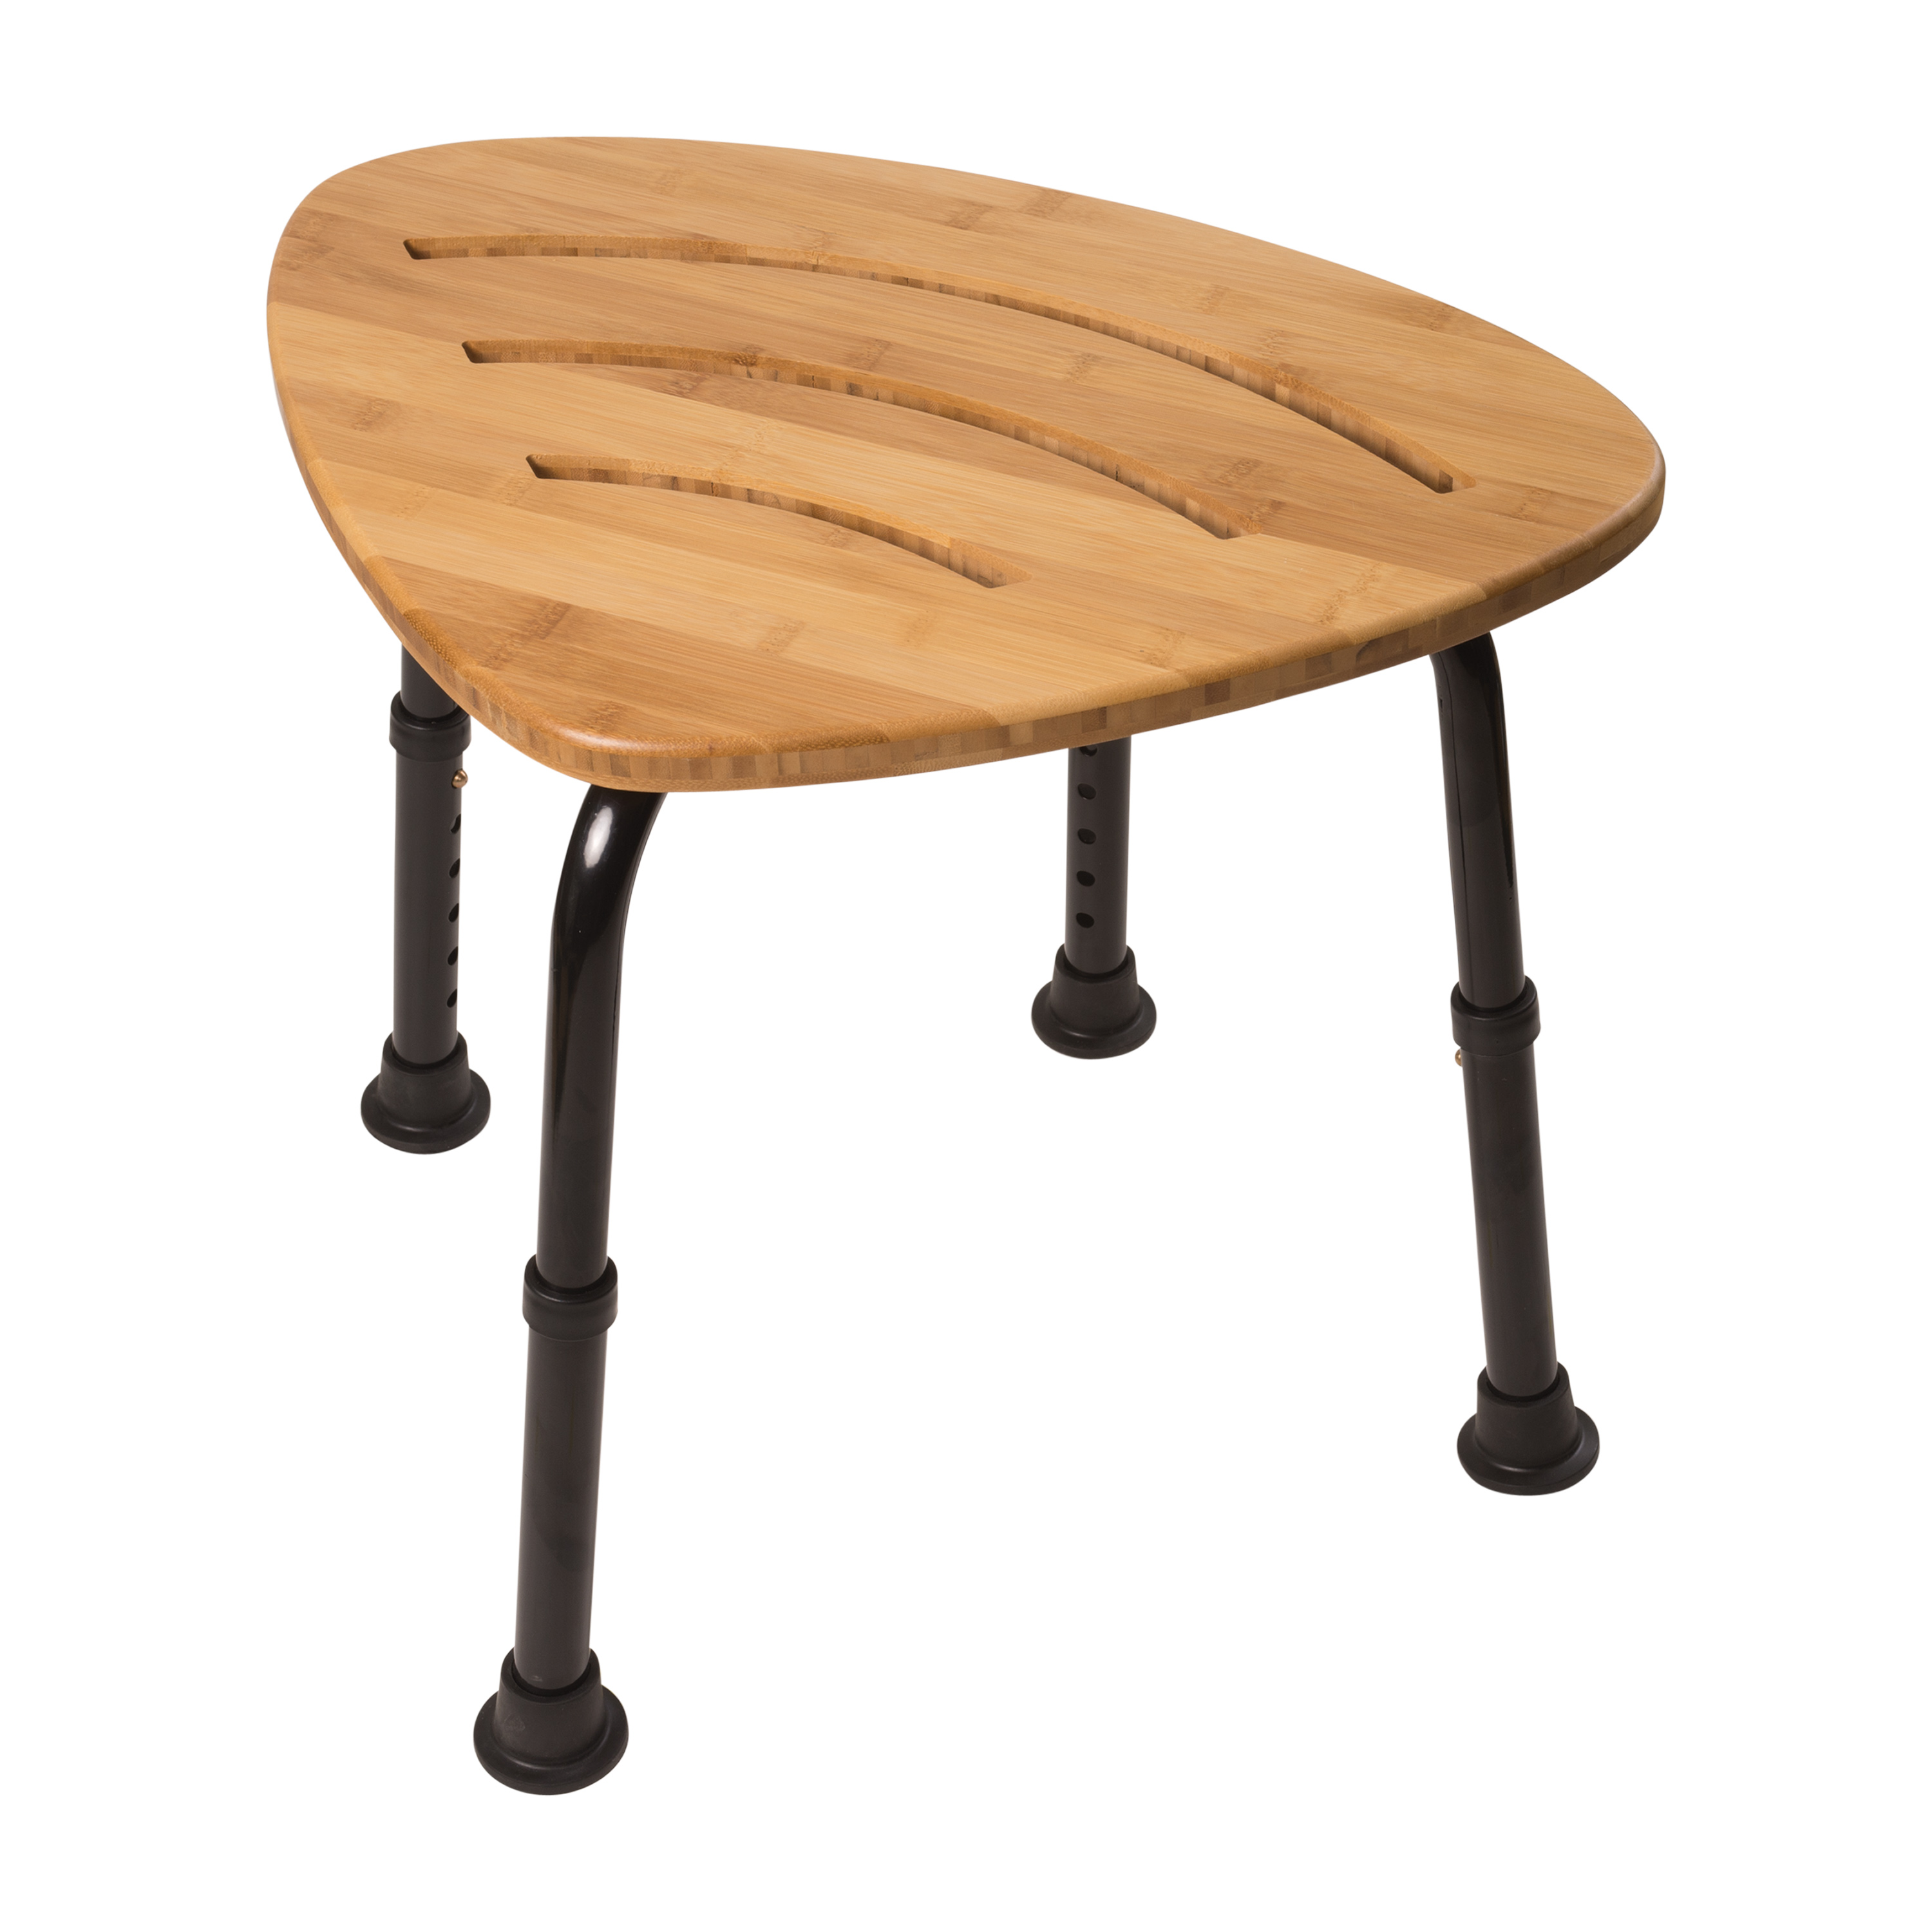 DMI Bamboo Bath Seat Shower Stool